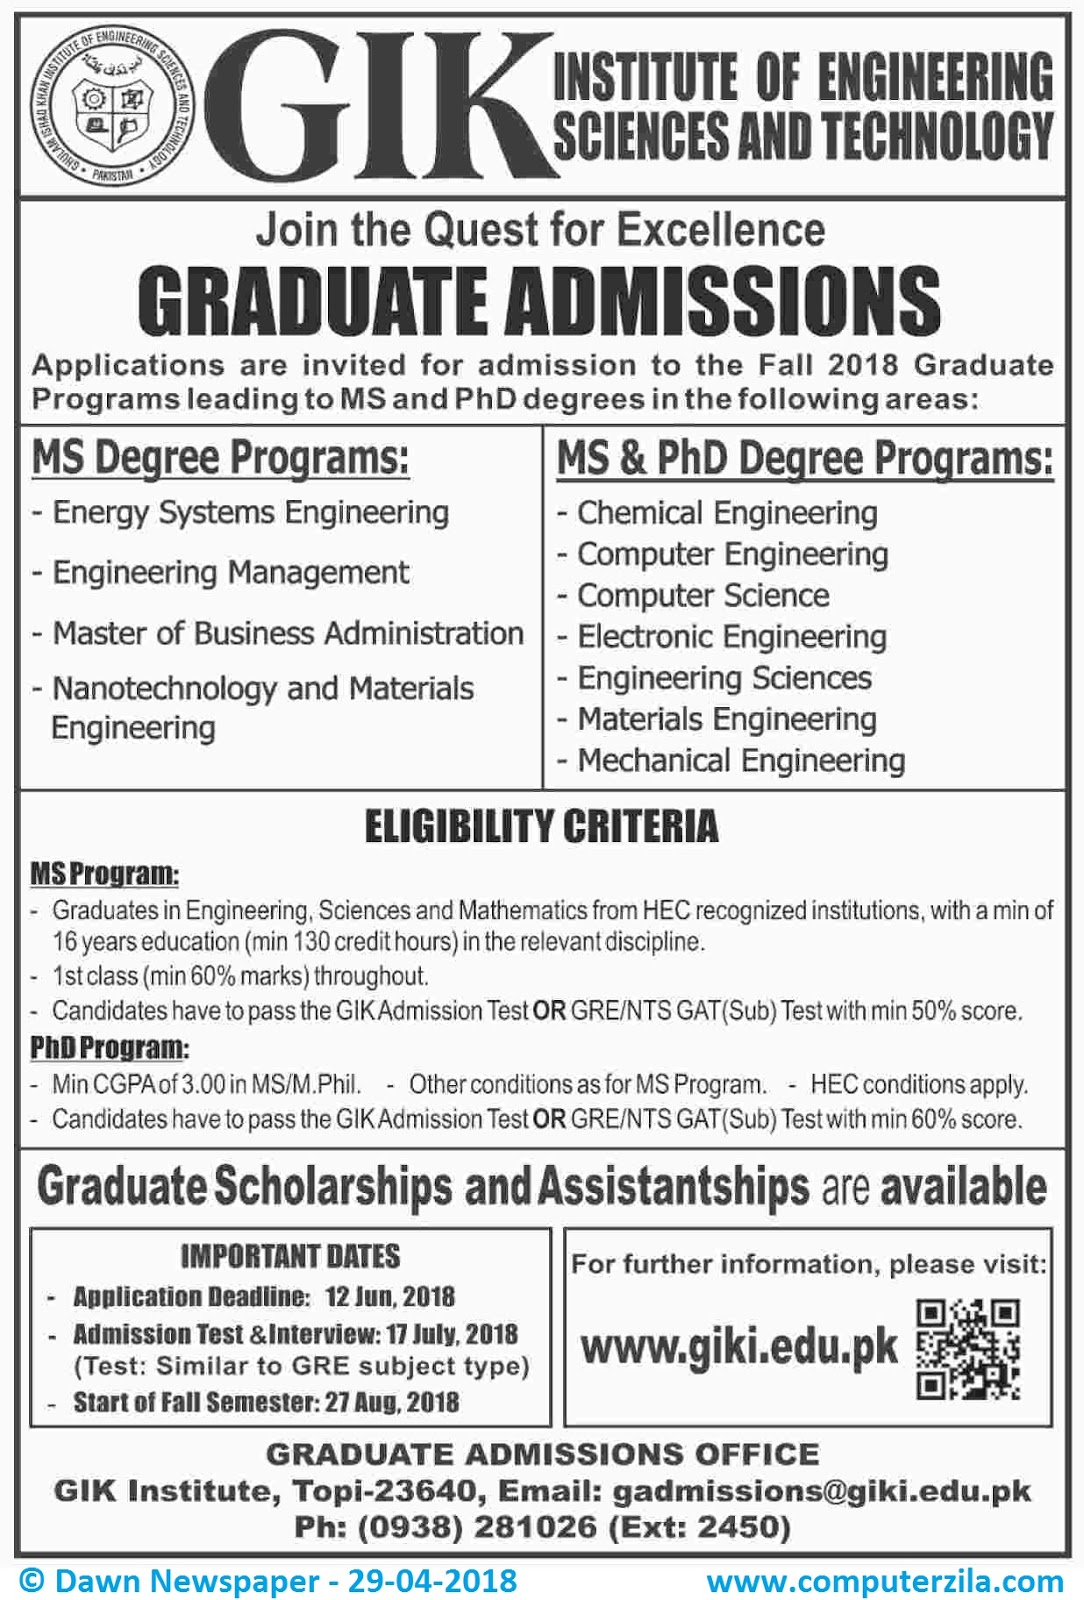 GIK Institute of Engineering, Sciences and Technology Admissions Fall 2018